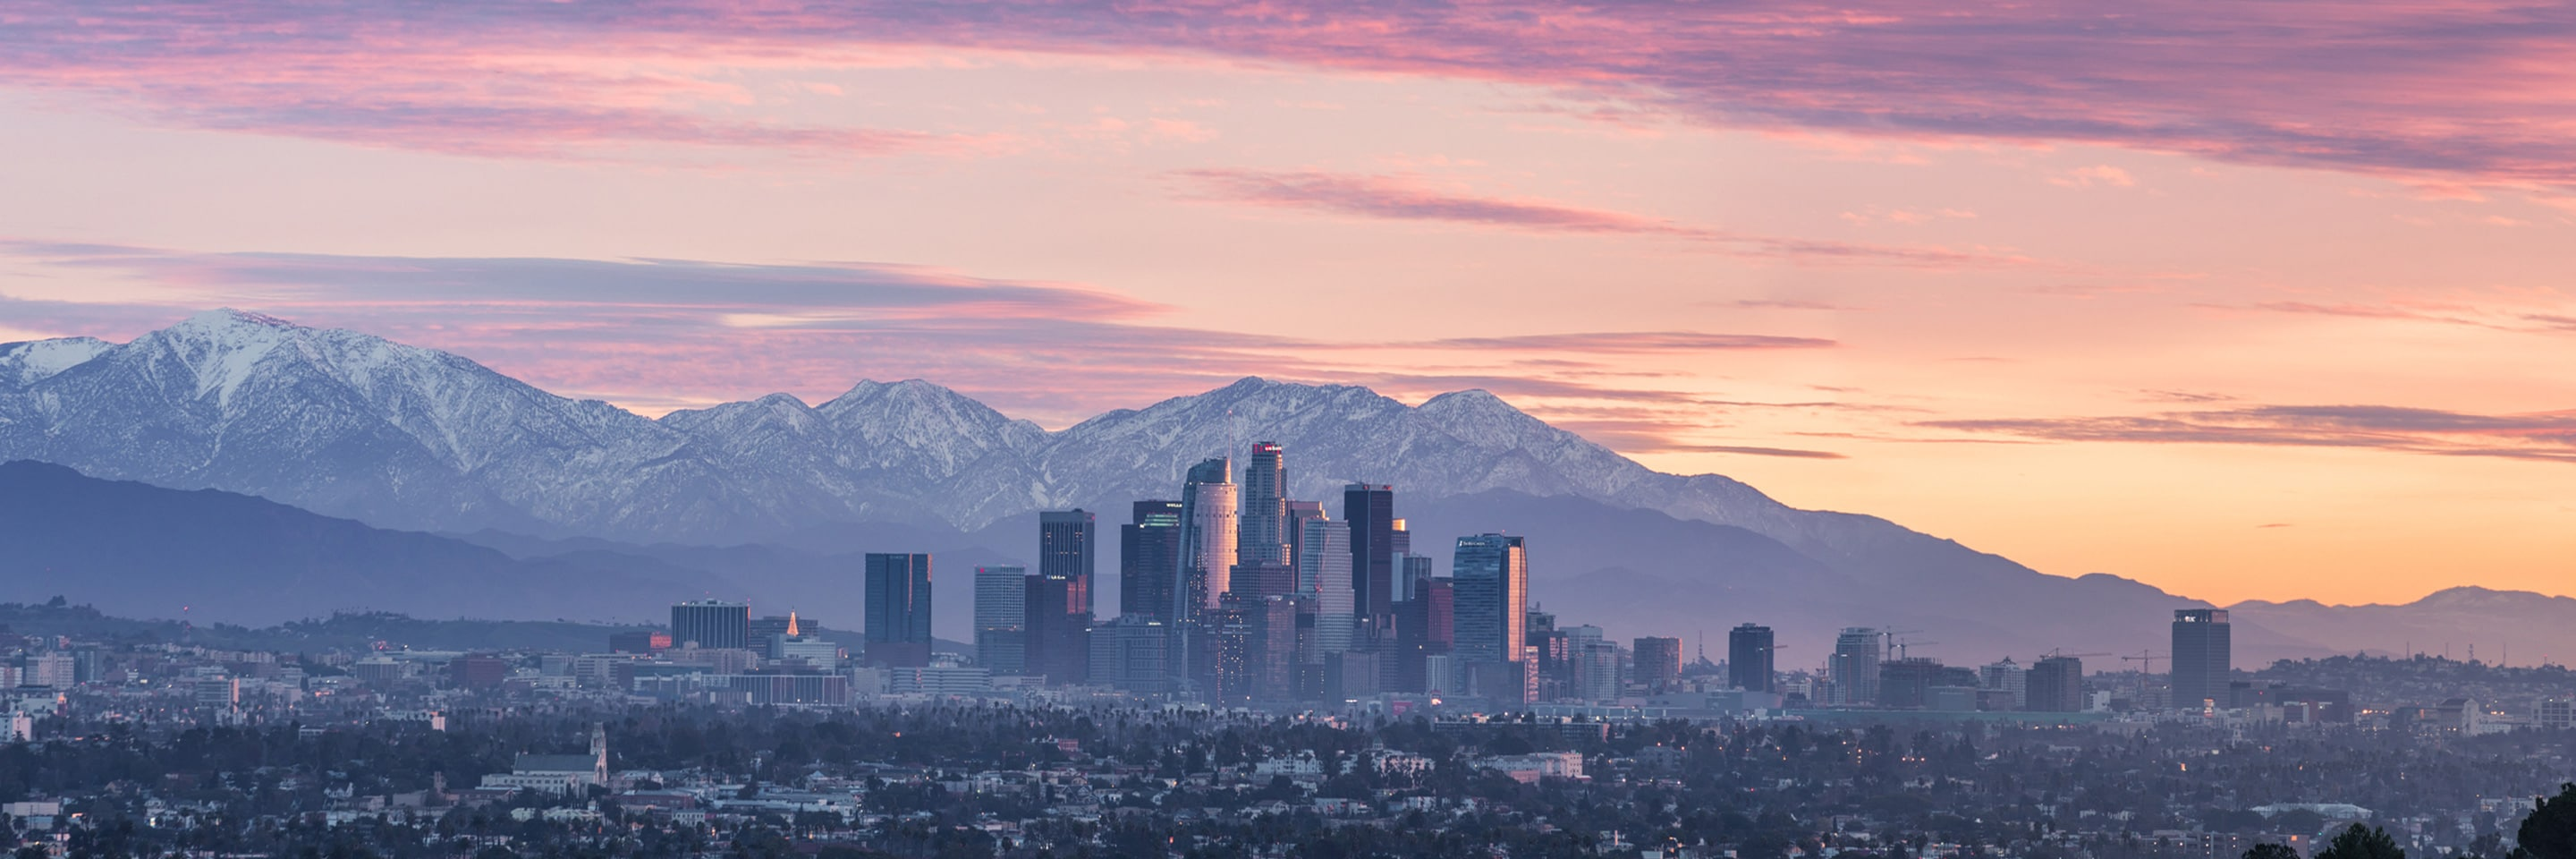 Top Hotels in Los Angeles | Marriott Los Angeles Hotels on destination massachusetts, destination michigan, destination cleveland, destination ann arbor, destination dallas,